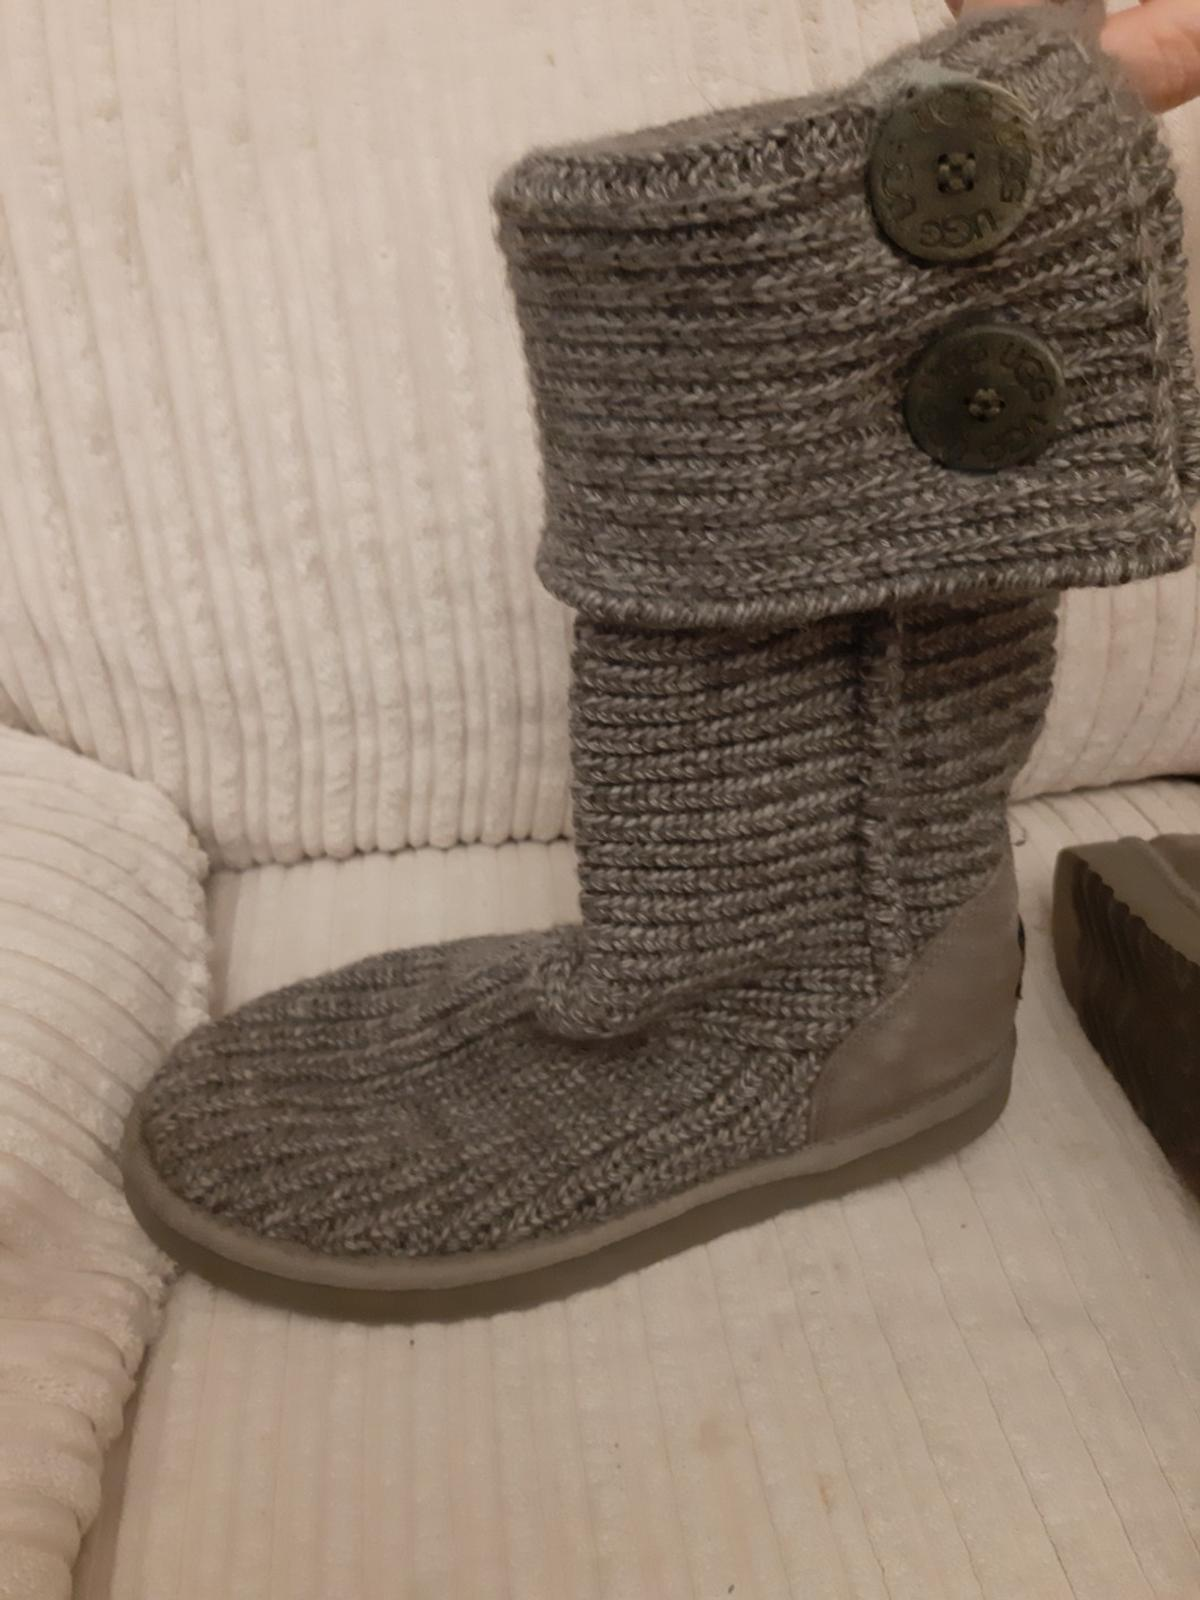 b8b6124537d UGG BOOTS in E17 London Borough of Waltham Forest for £30.00 for ...